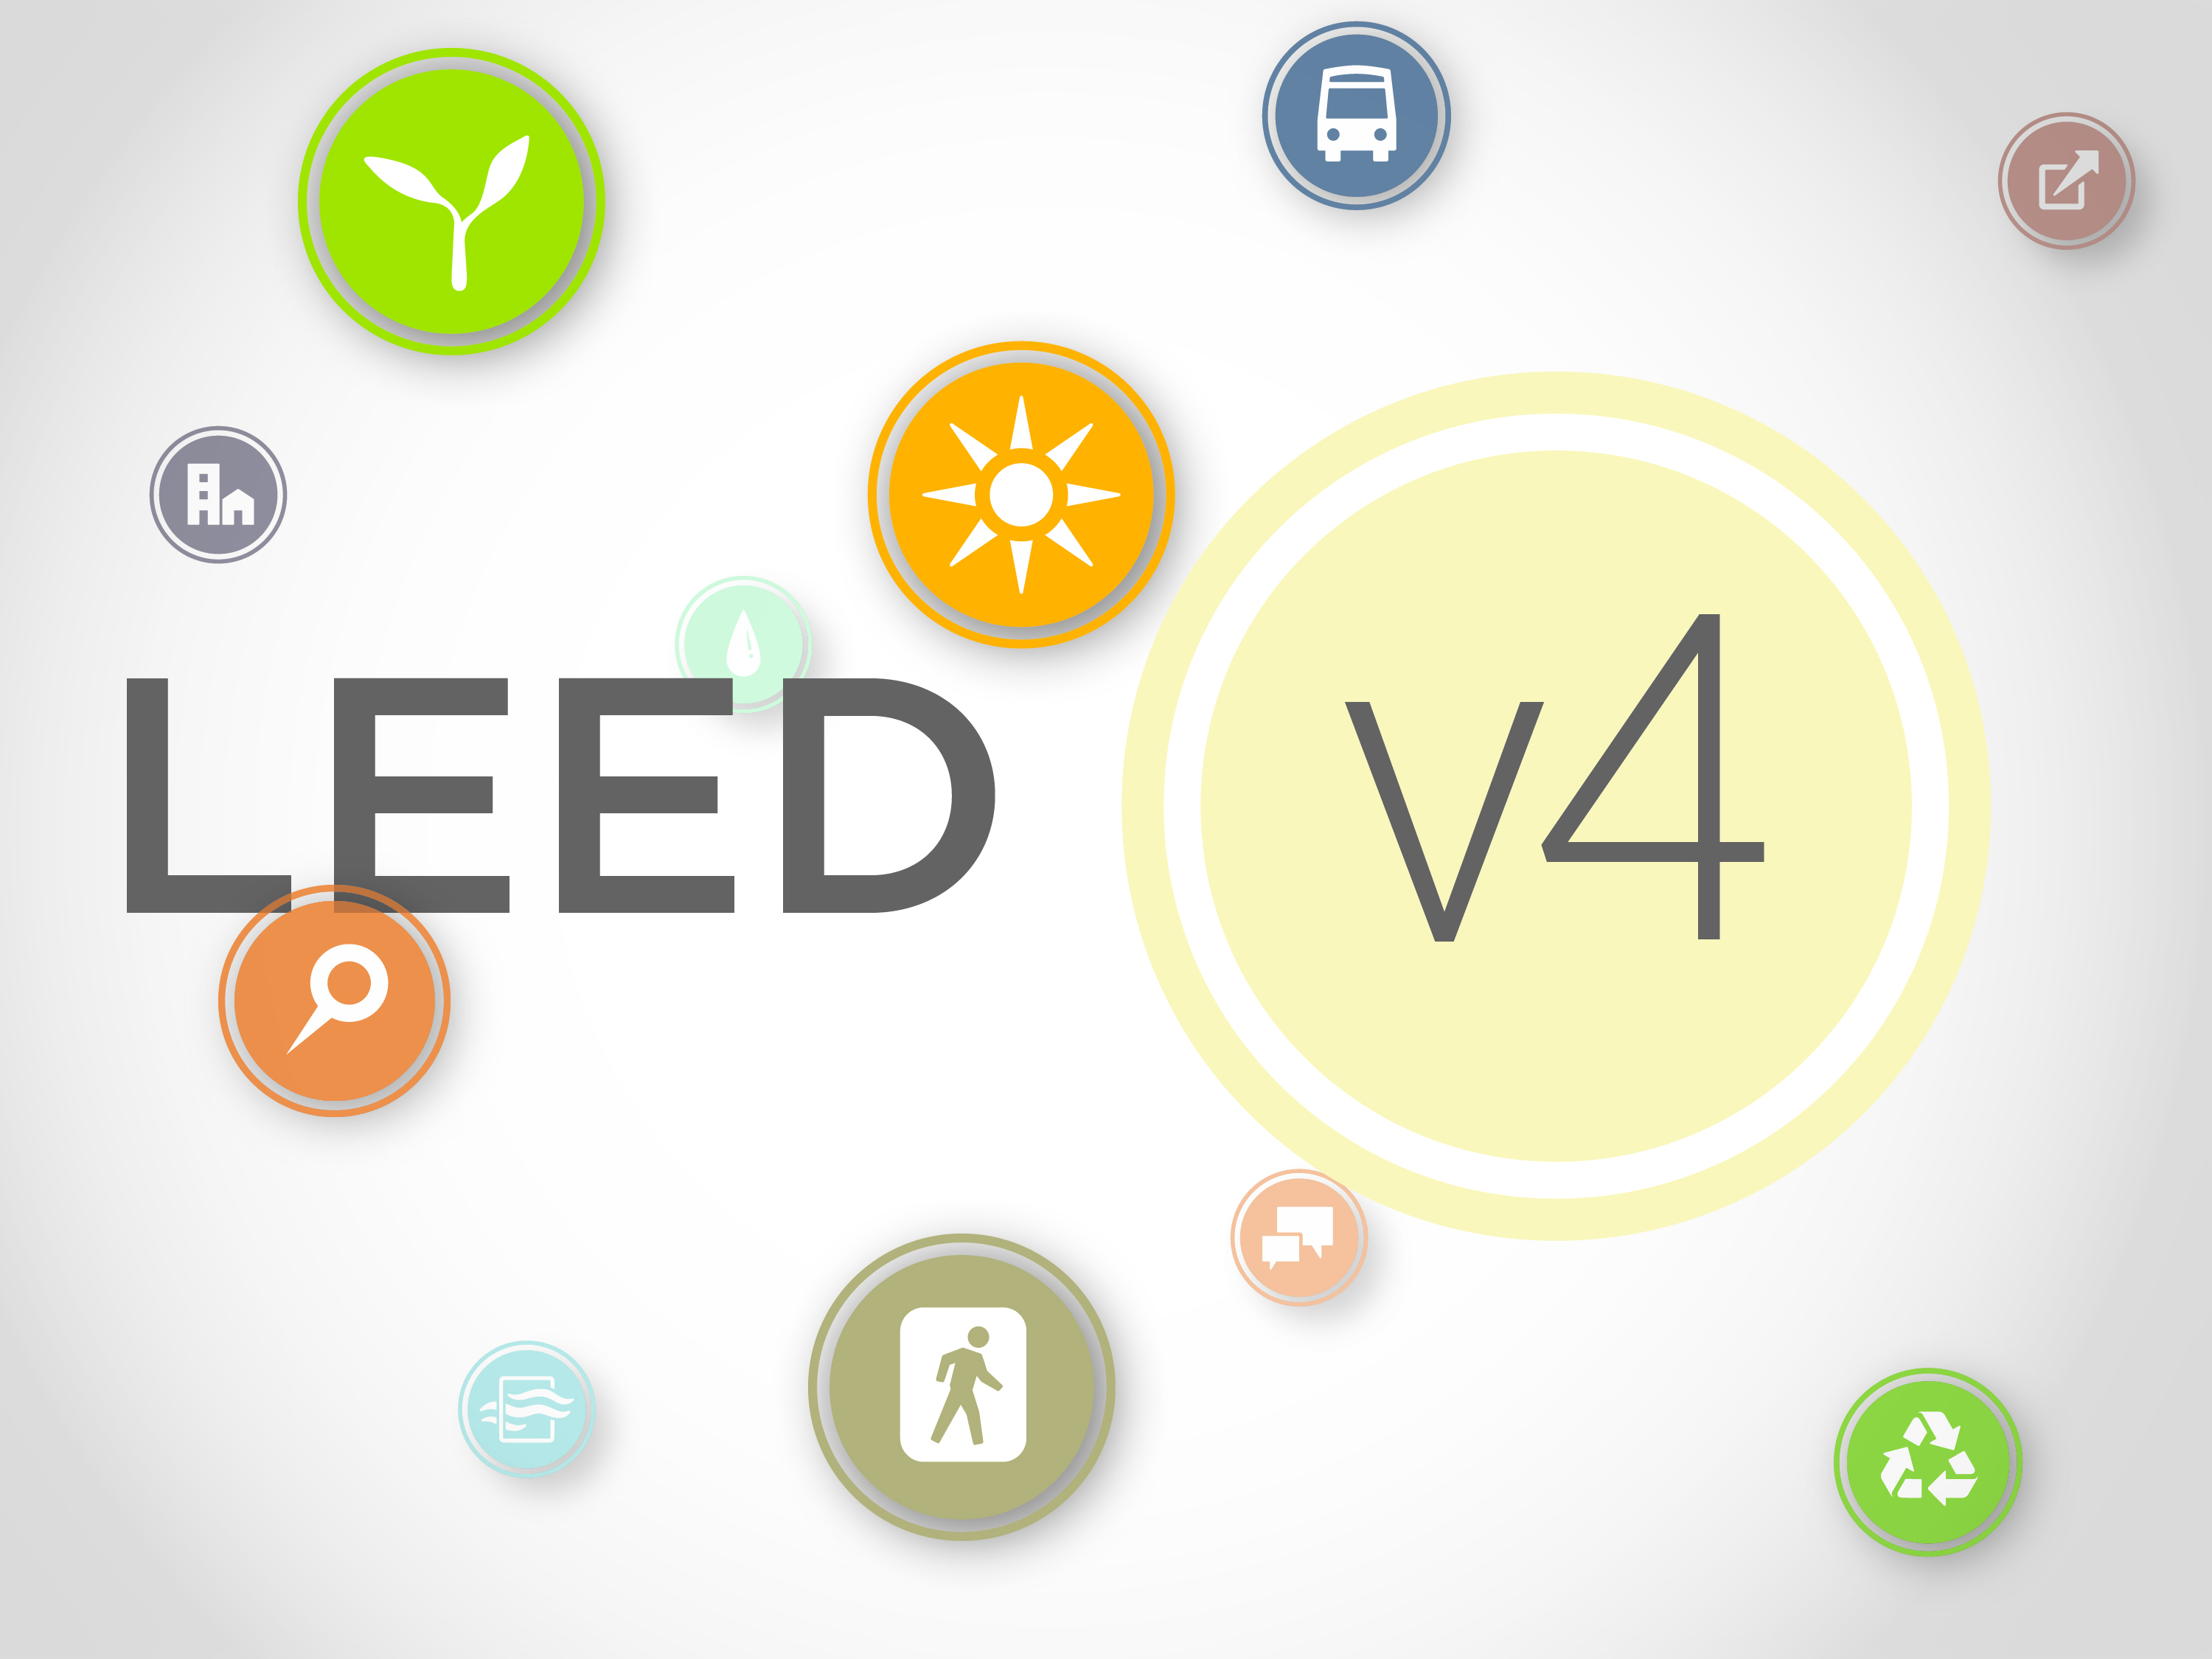 LEED v4 for HOMES DESIGN AND CONSTRUCTION